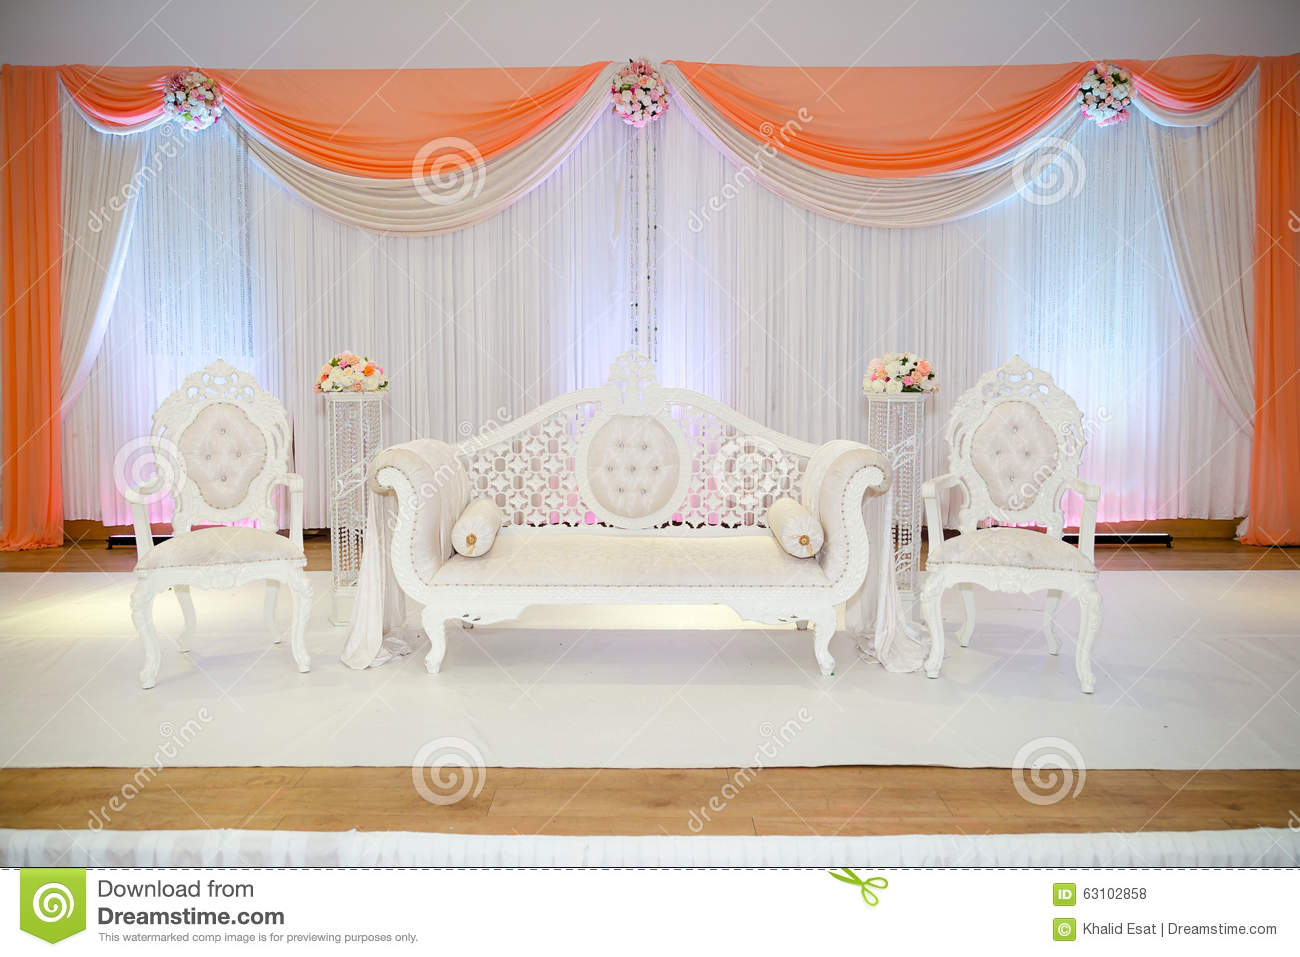 Peach themed wedding stage stock photo. Image of asian - 63102858